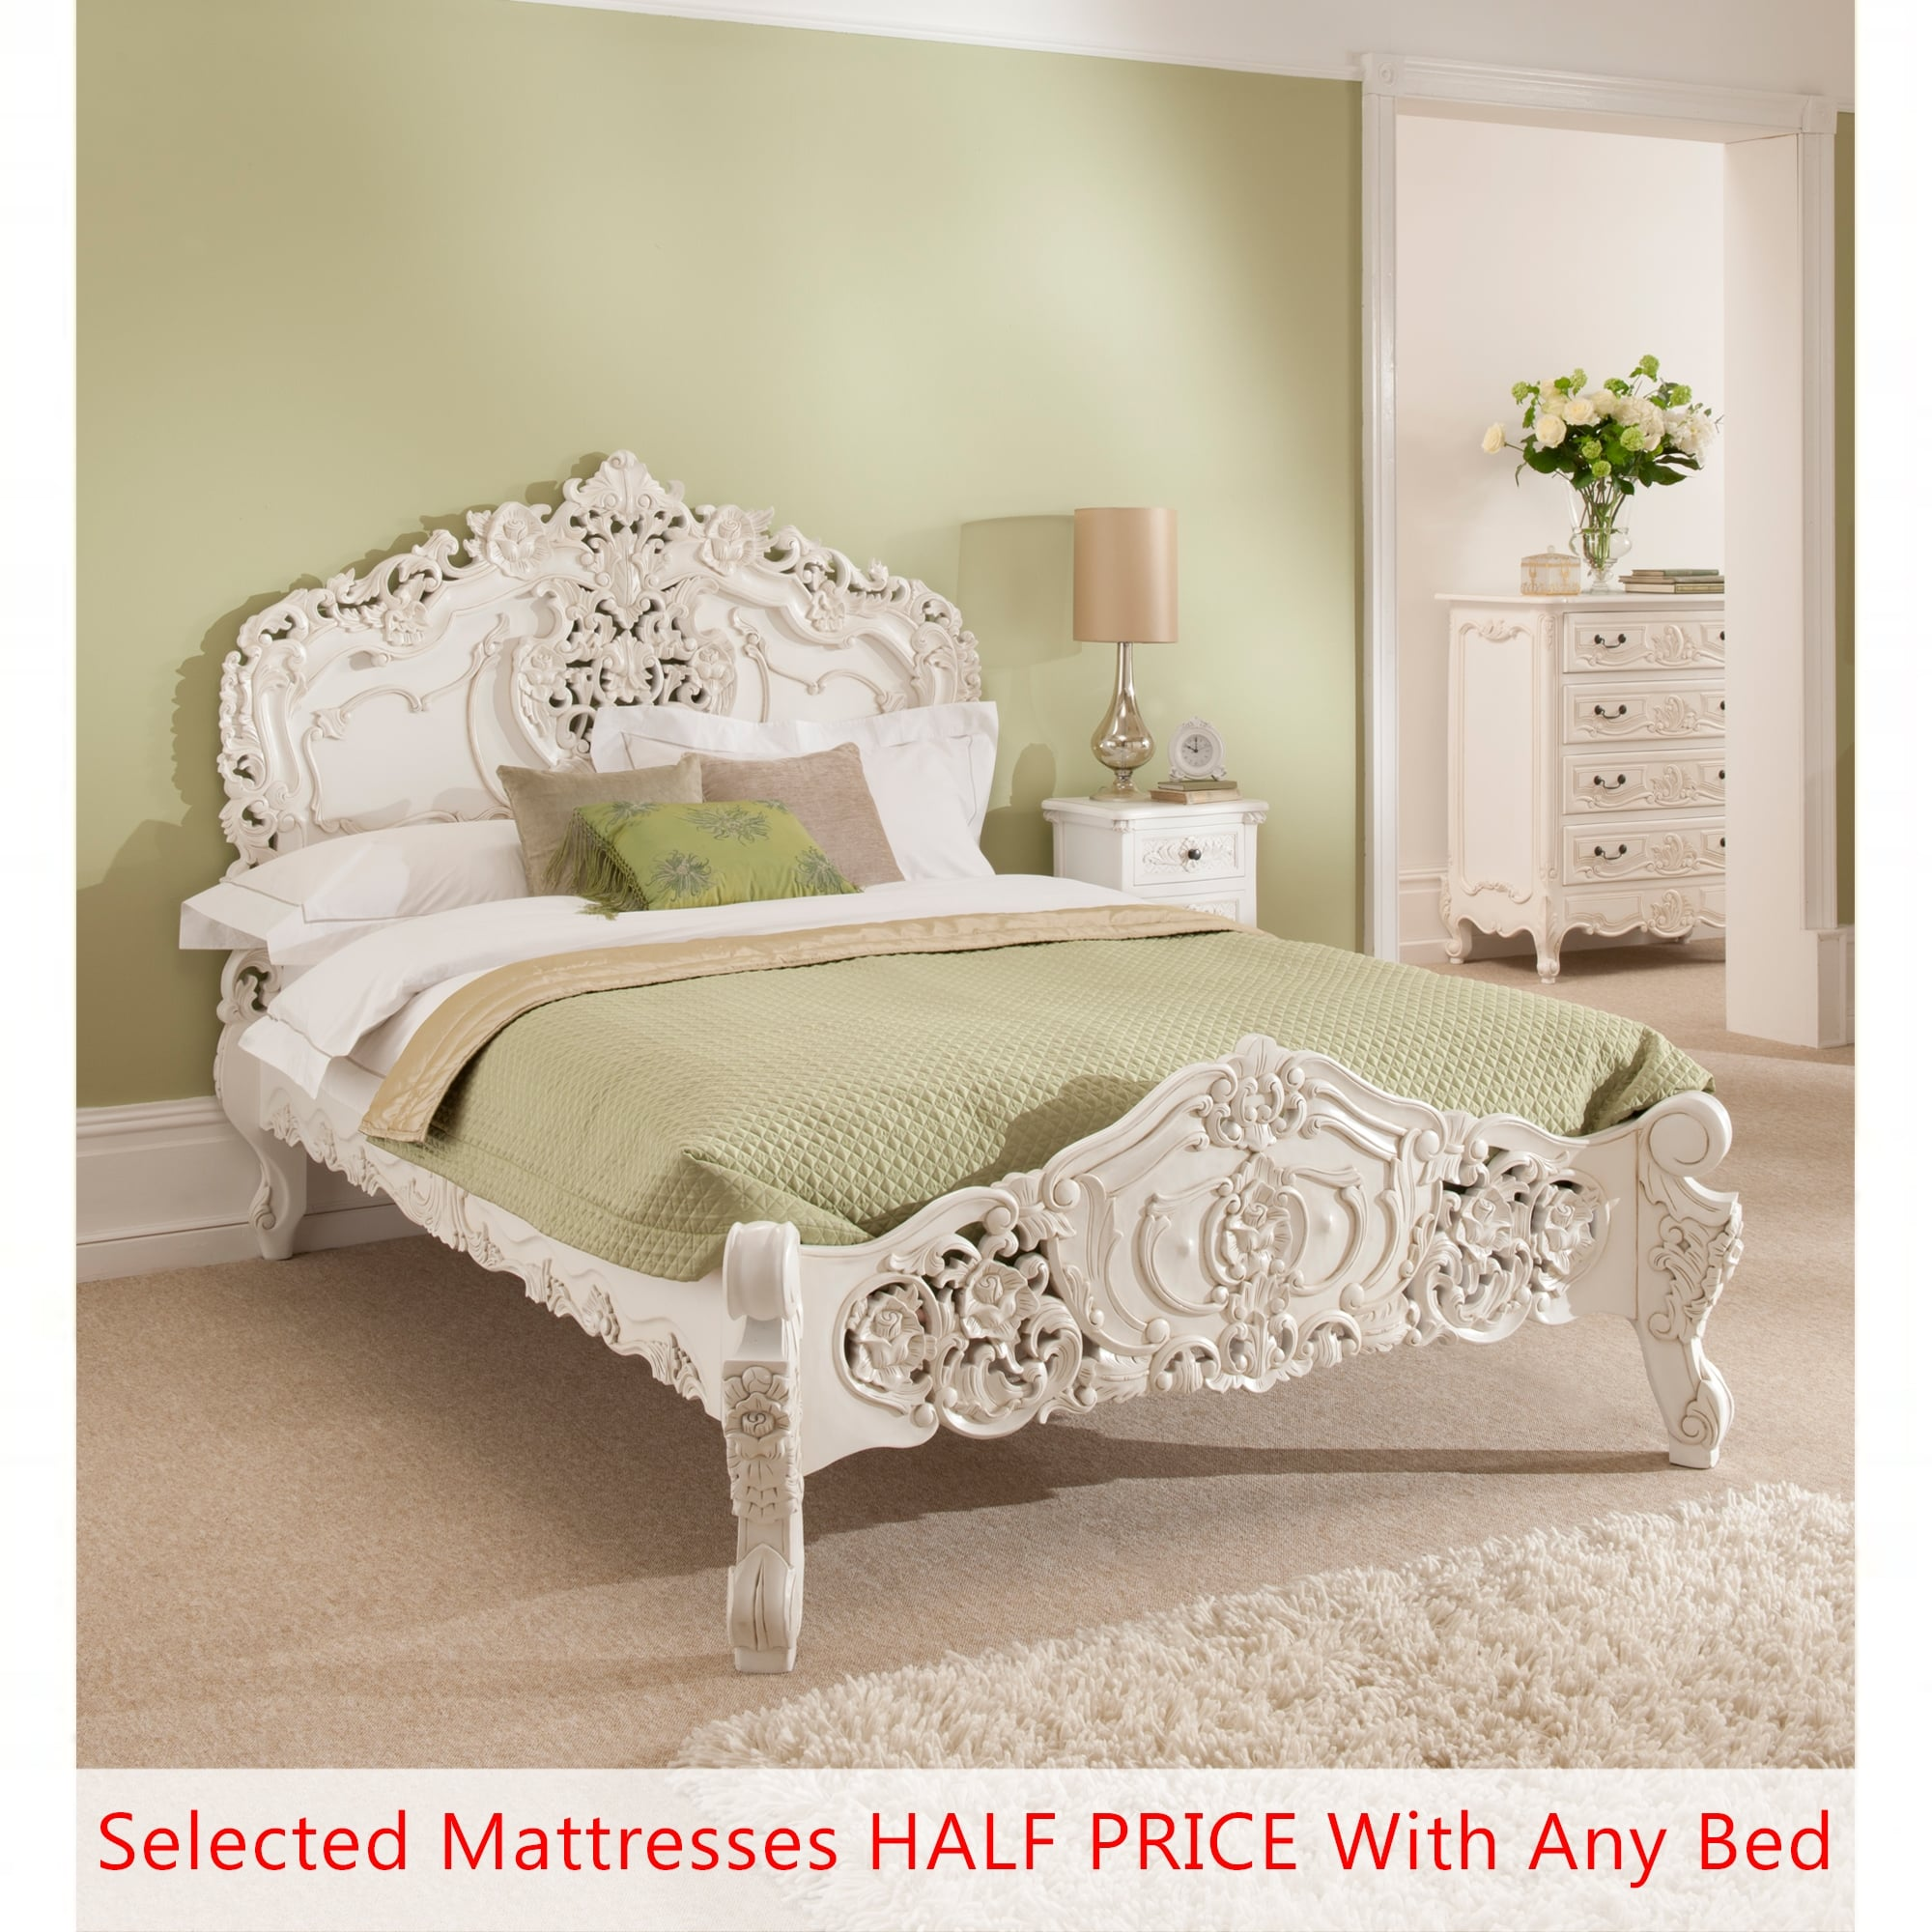 Rococo antique french style bed Bed and mattress deals